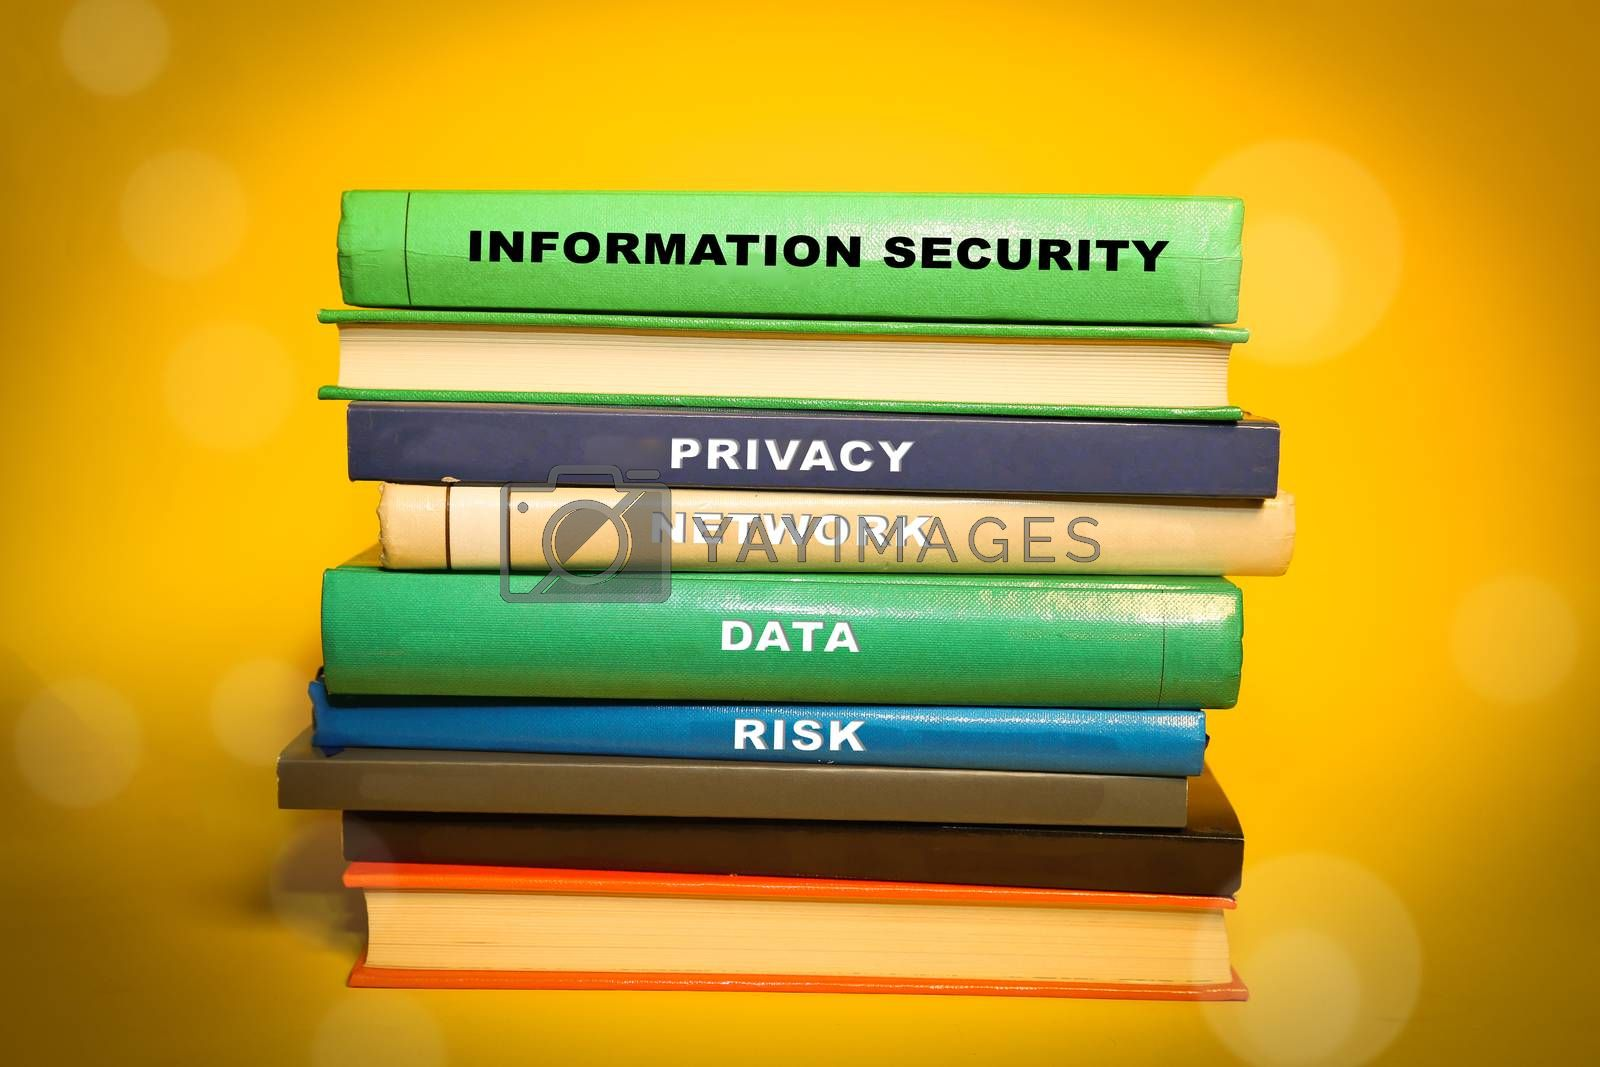 Royalty free image of Information Security themed books - Network and privacy  by inspireme